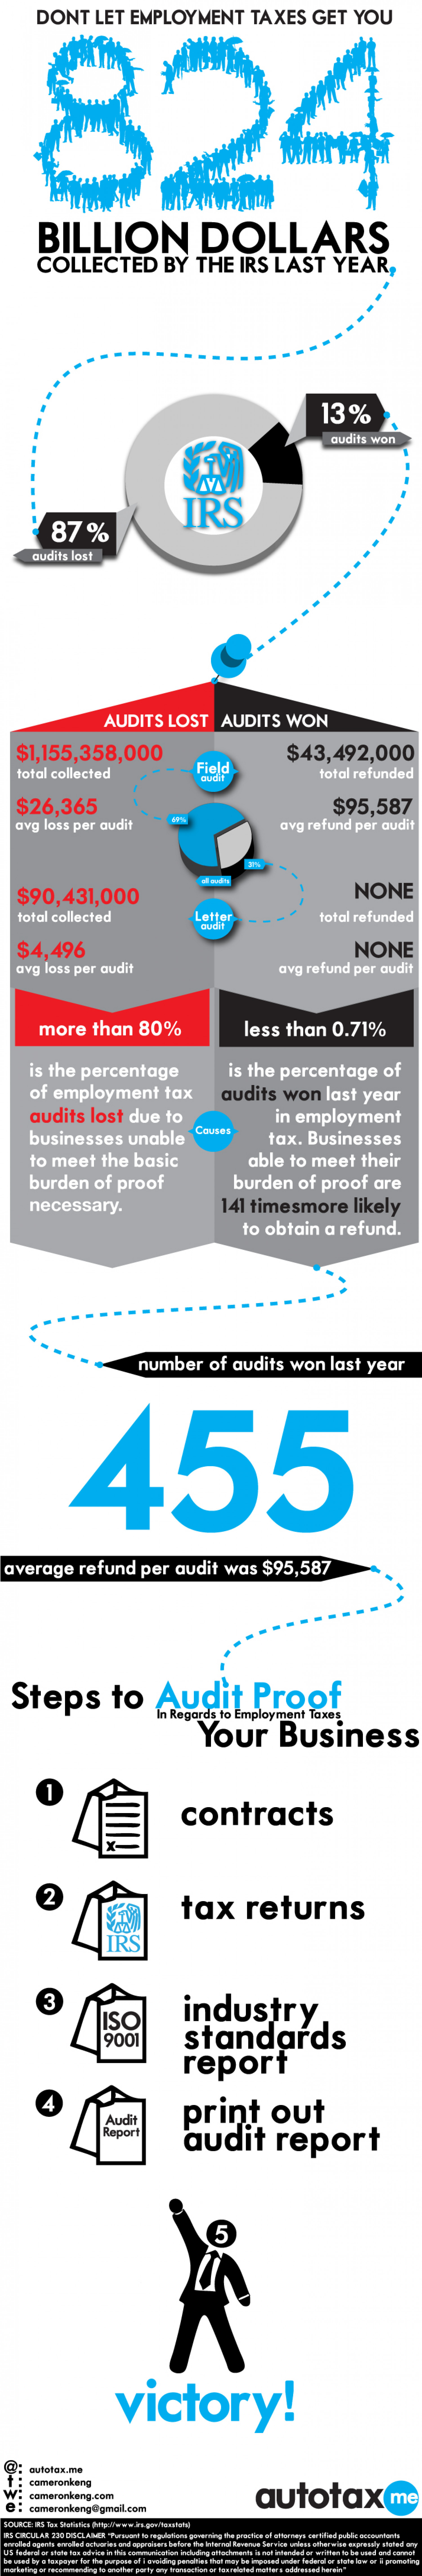 Employment Tax: 13% of All Audits Win - Avg Refund is 100k Infographic